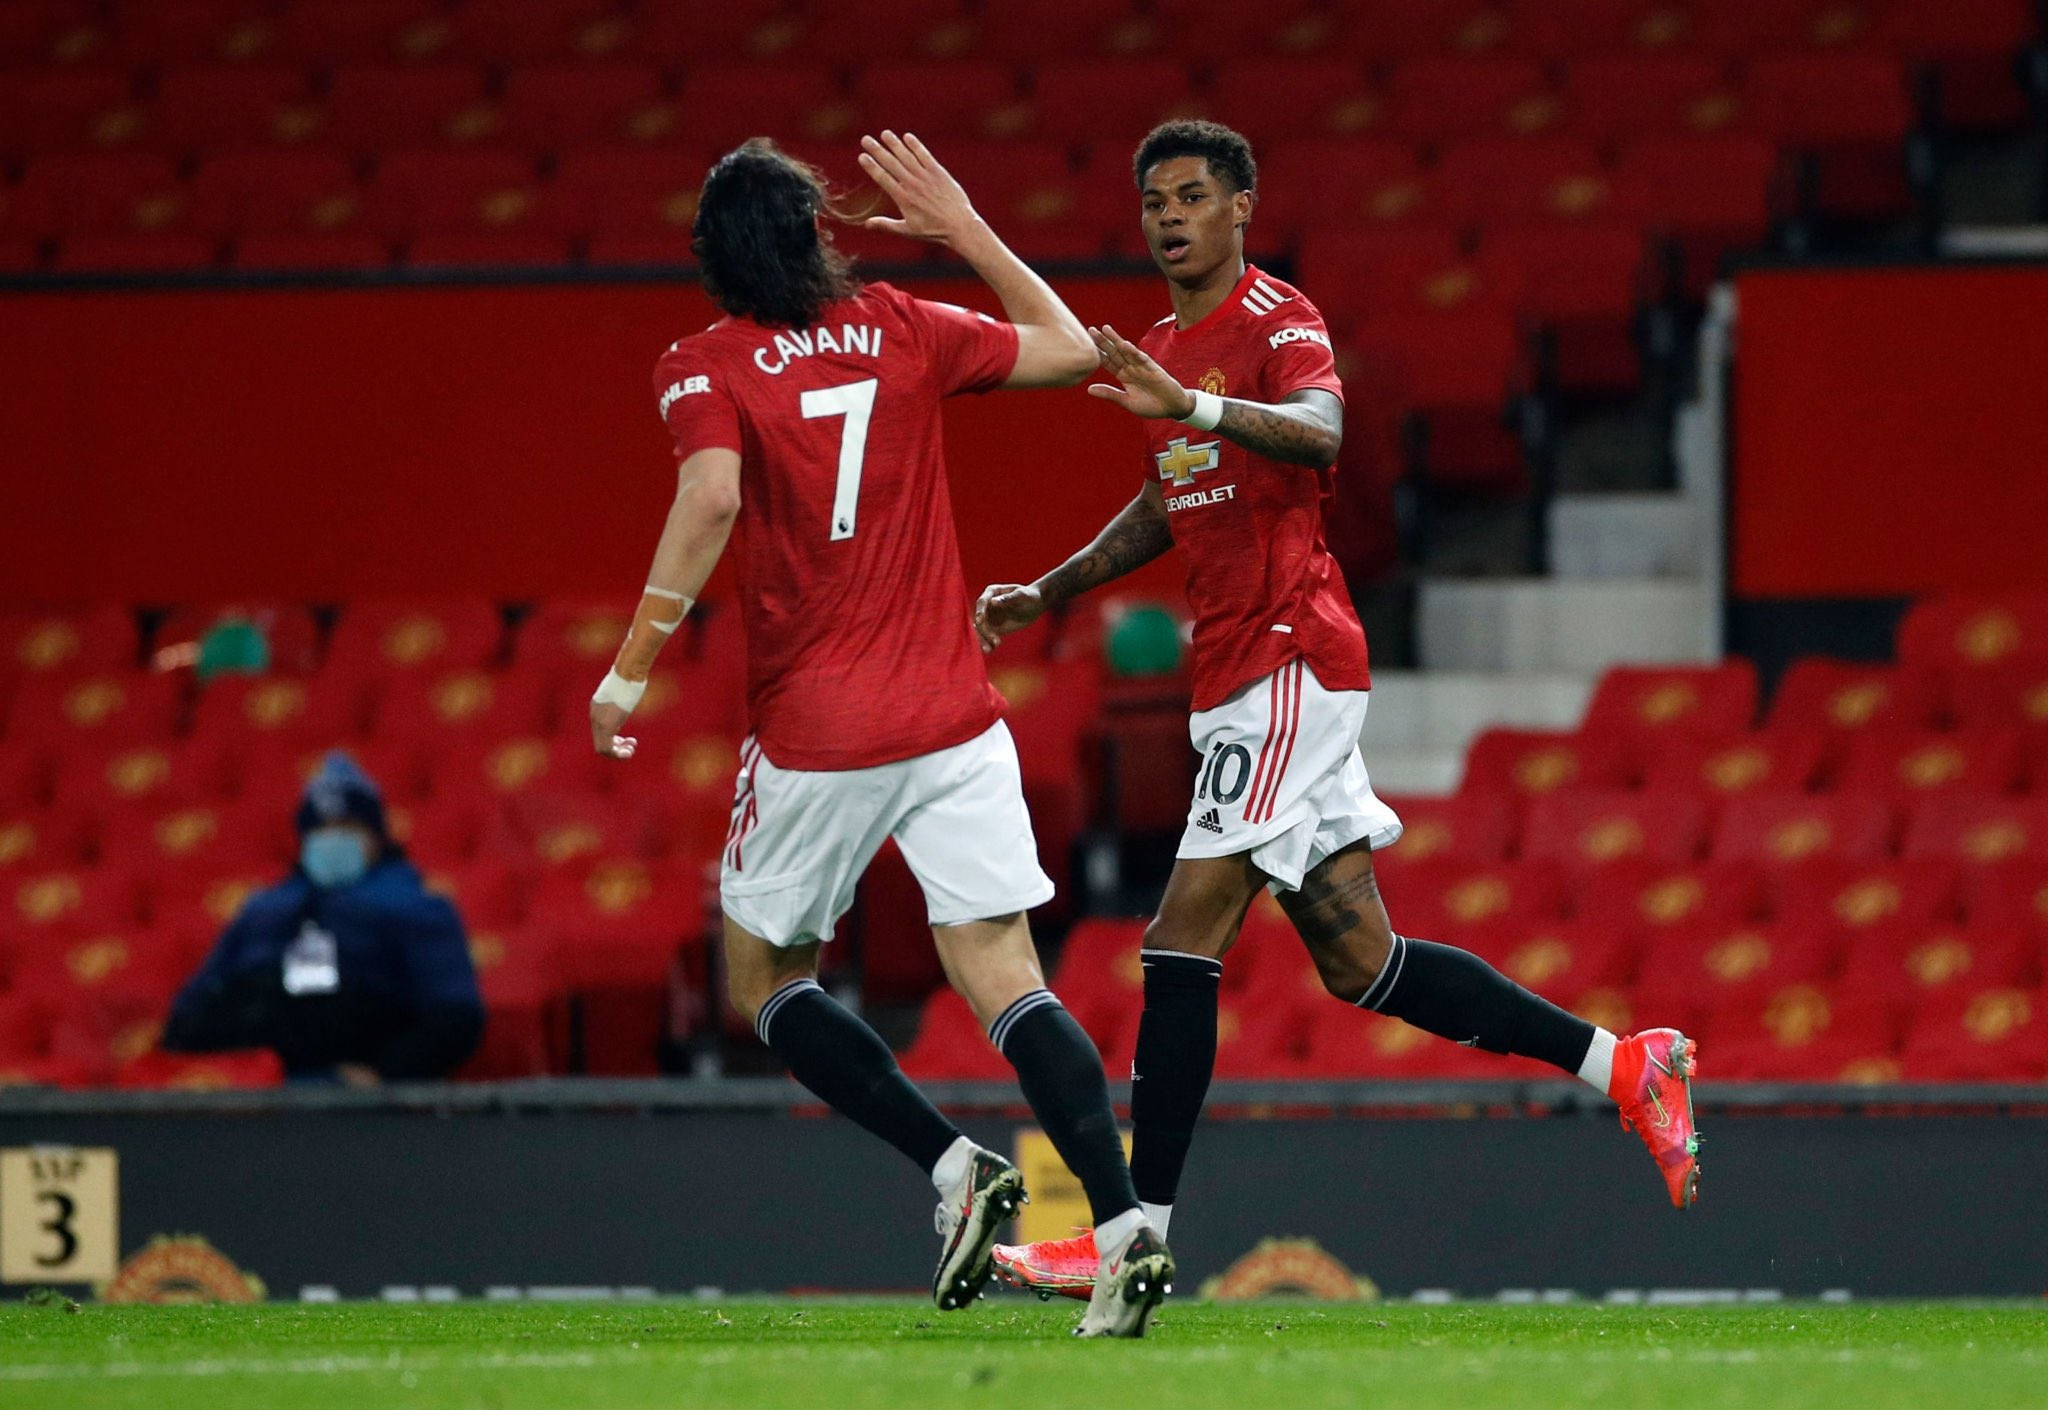 Manchester United Photo,Manchester United Twitter Trend : Most Popular Tweets